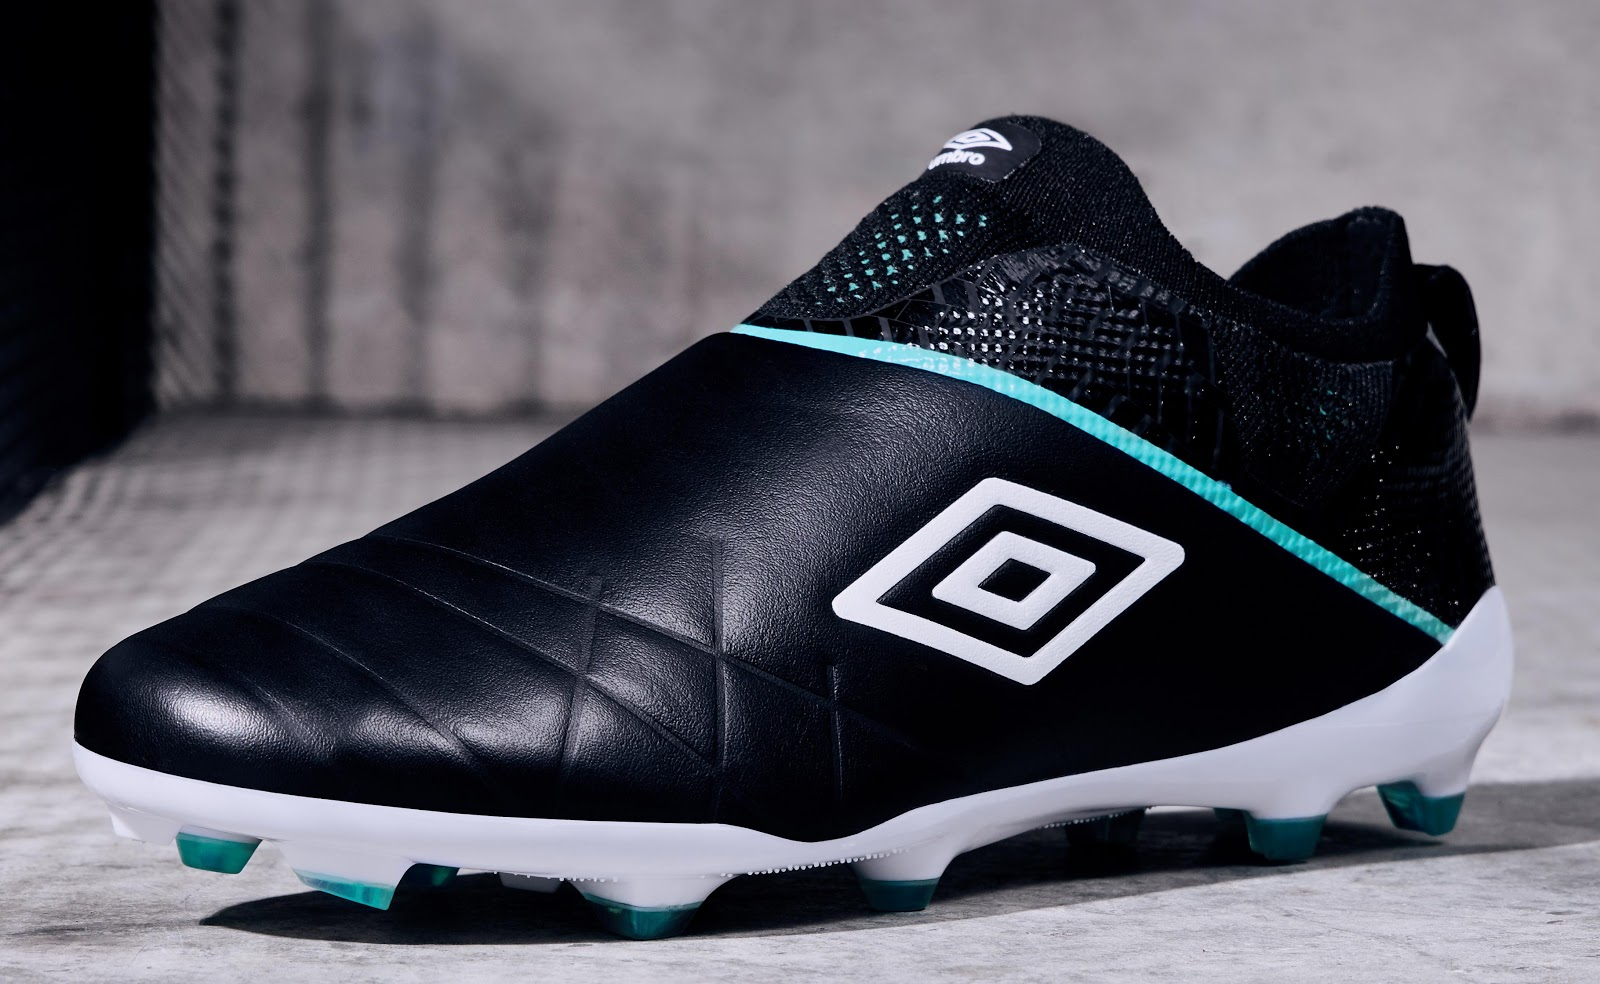 To acquire Boots umbro pictures trends